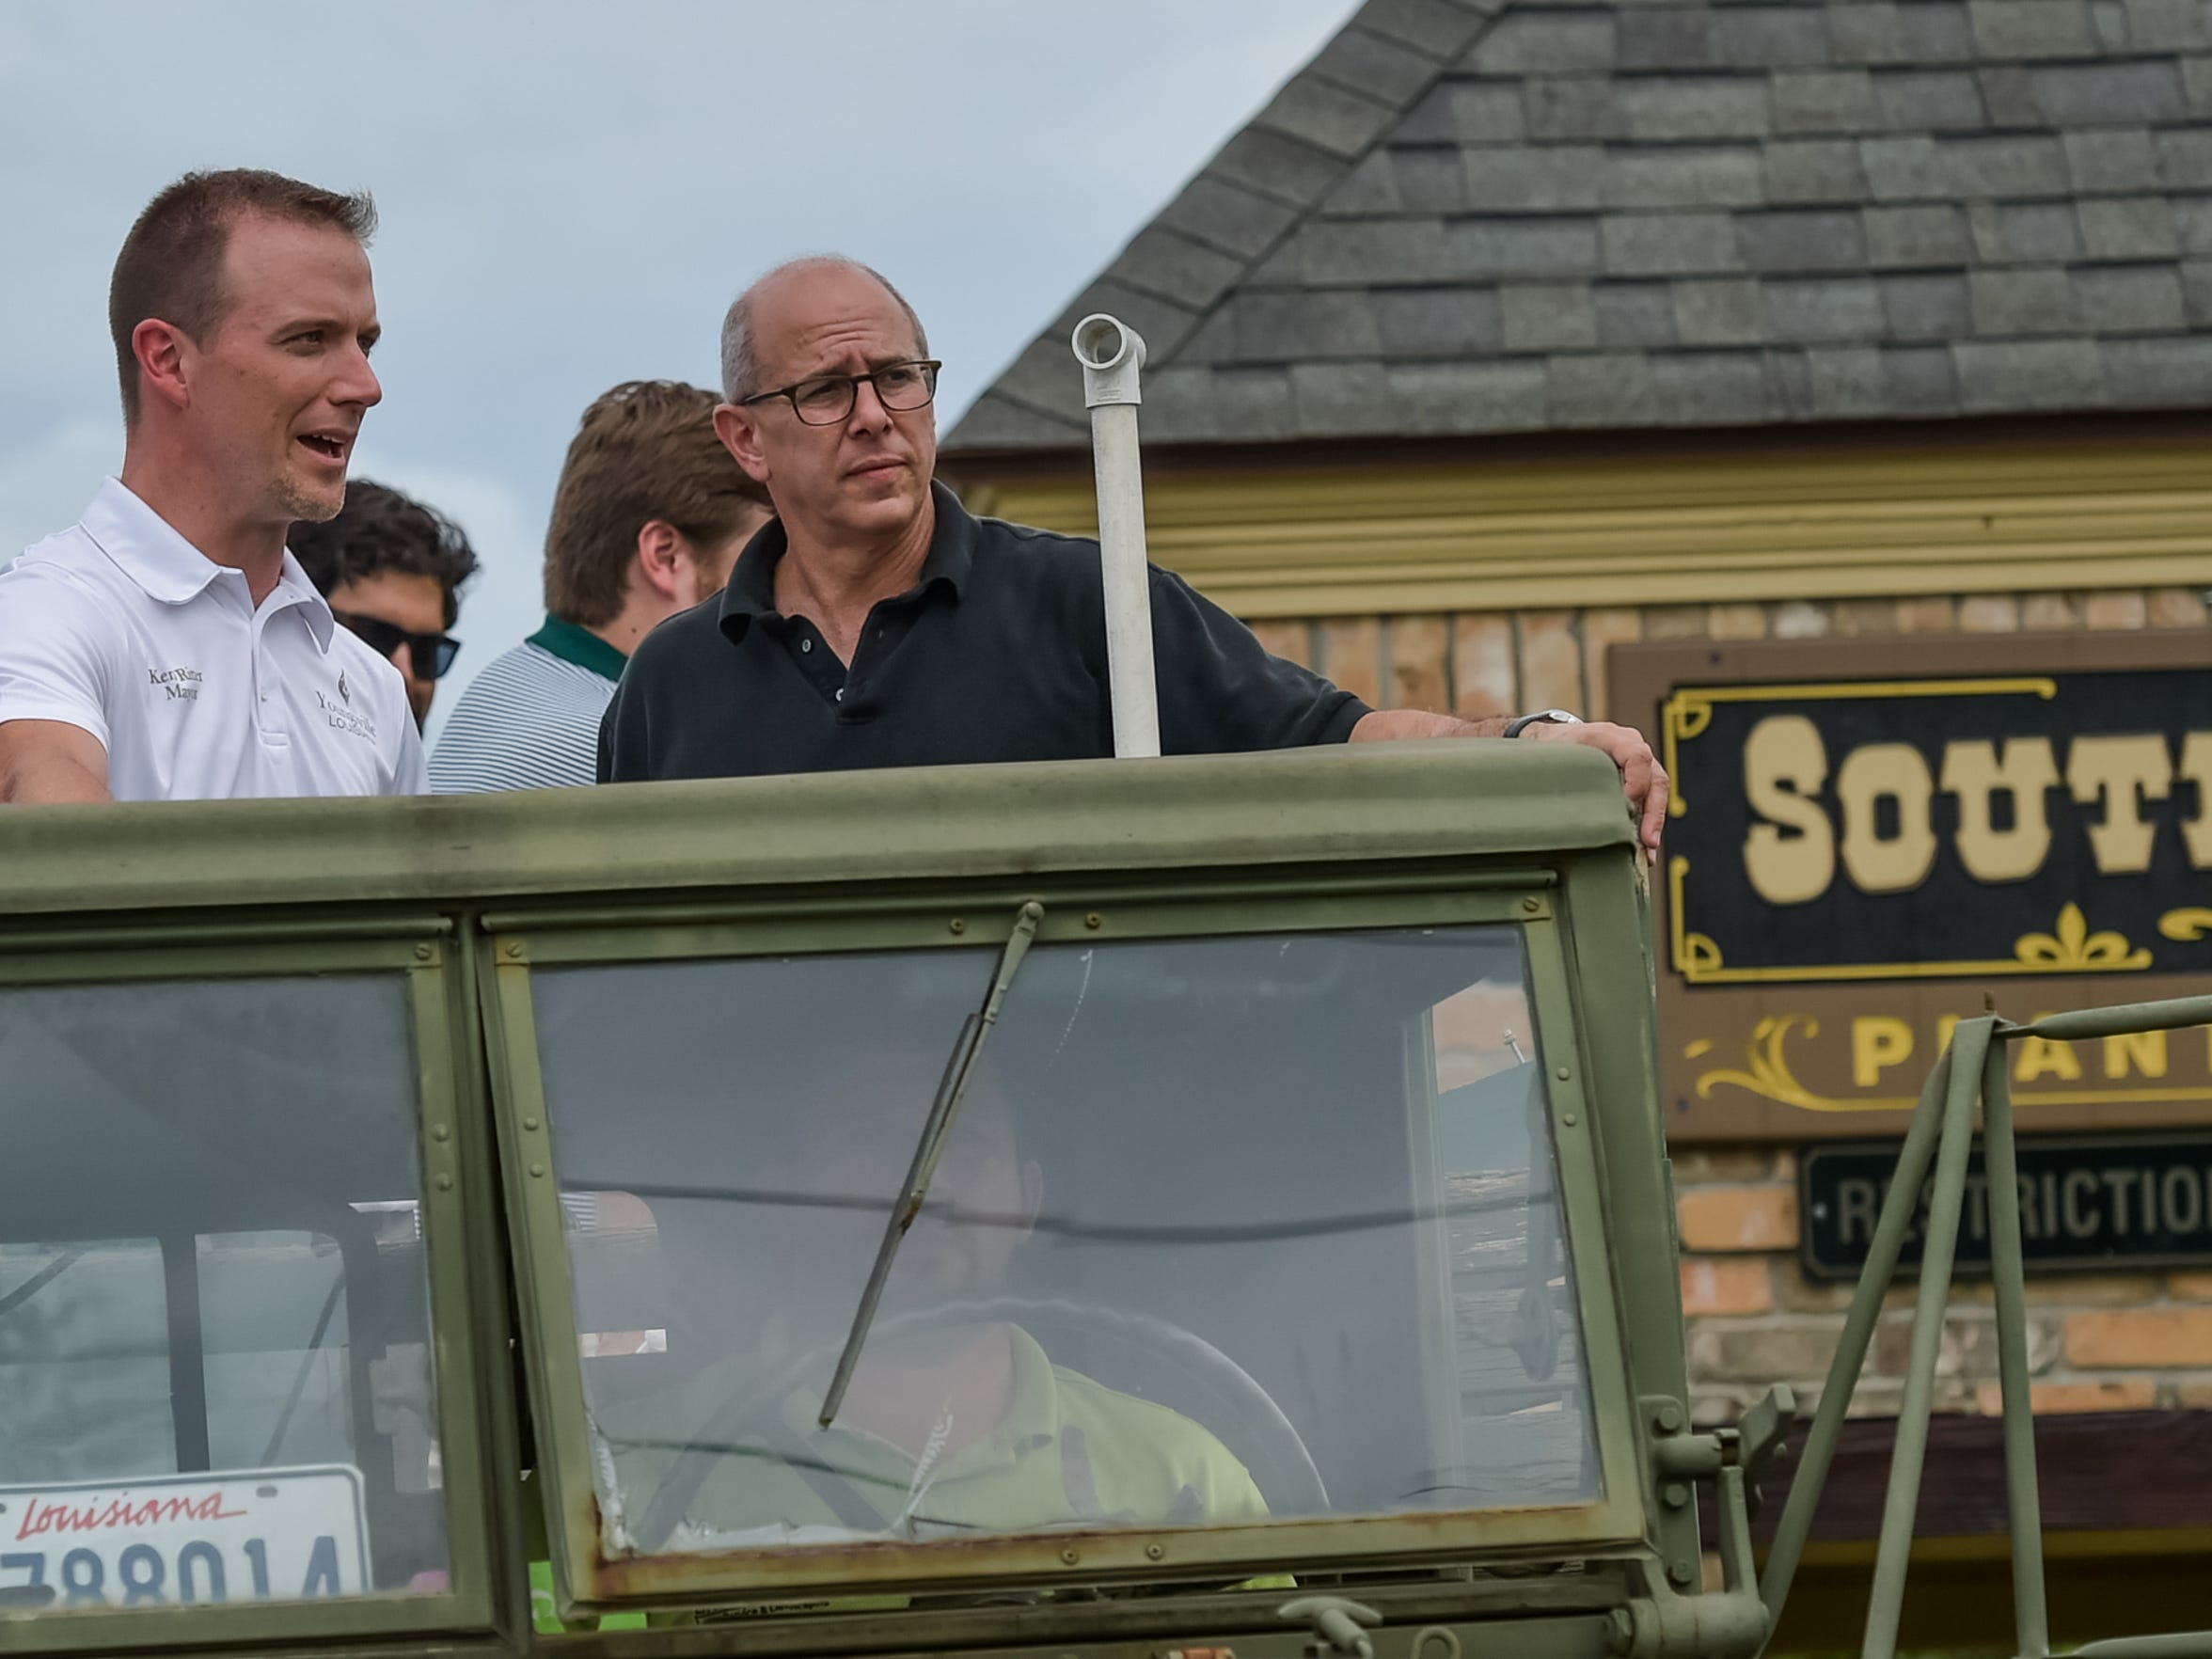 Mayor Ken Ritter (L) and Congressman Charles Boustany tour the flood damaged area of Youngsville, LA. August 14, 2016.